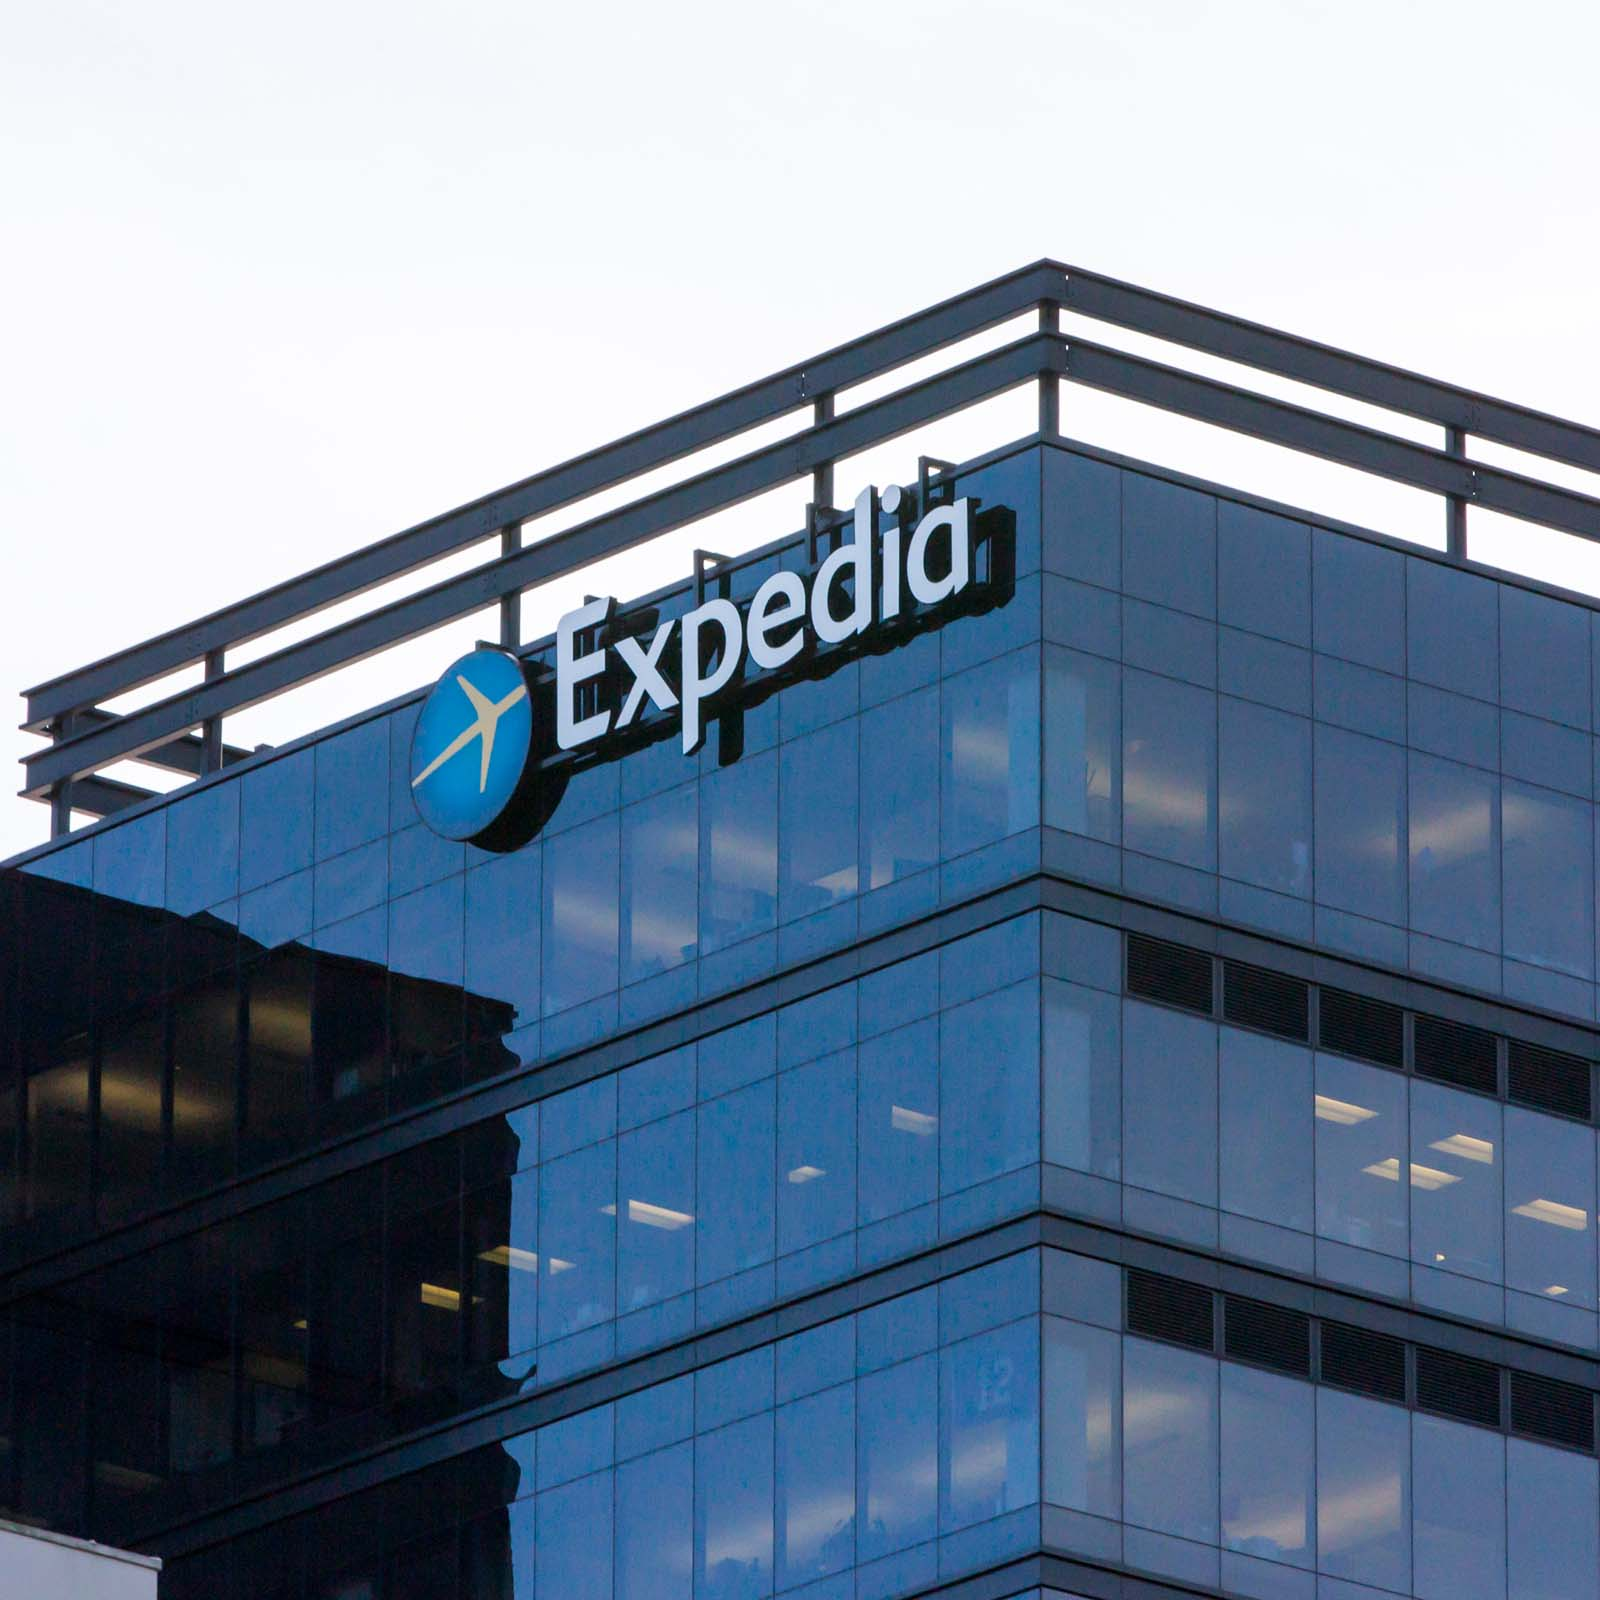 Expedia Drops Bitcoin Payments, Official Confirms - Bitcoin News